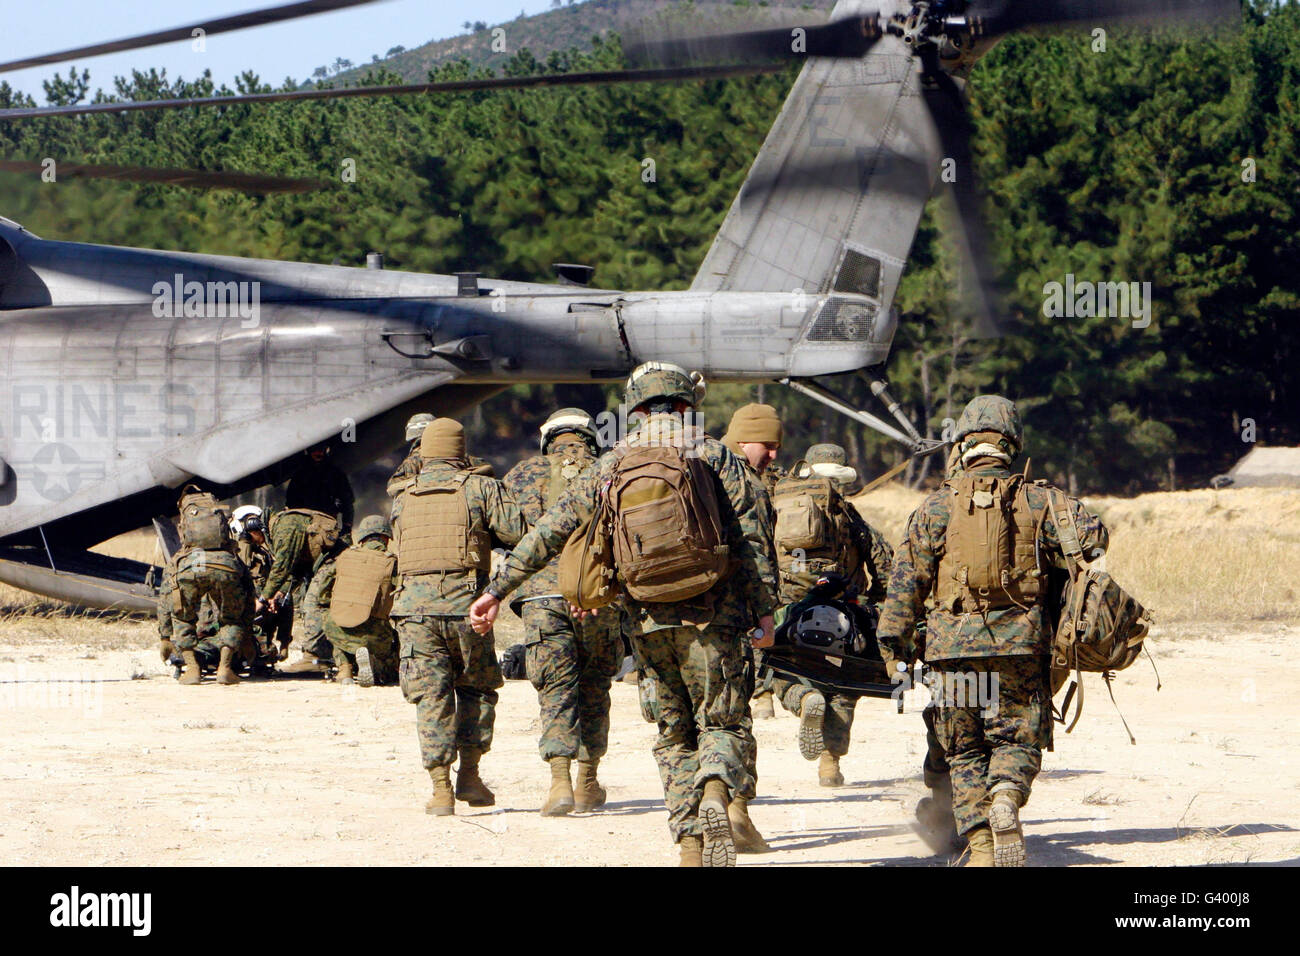 U.S. Navy corpsmen carry wounded service members to a CH-53E Super Stallion. - Stock Image